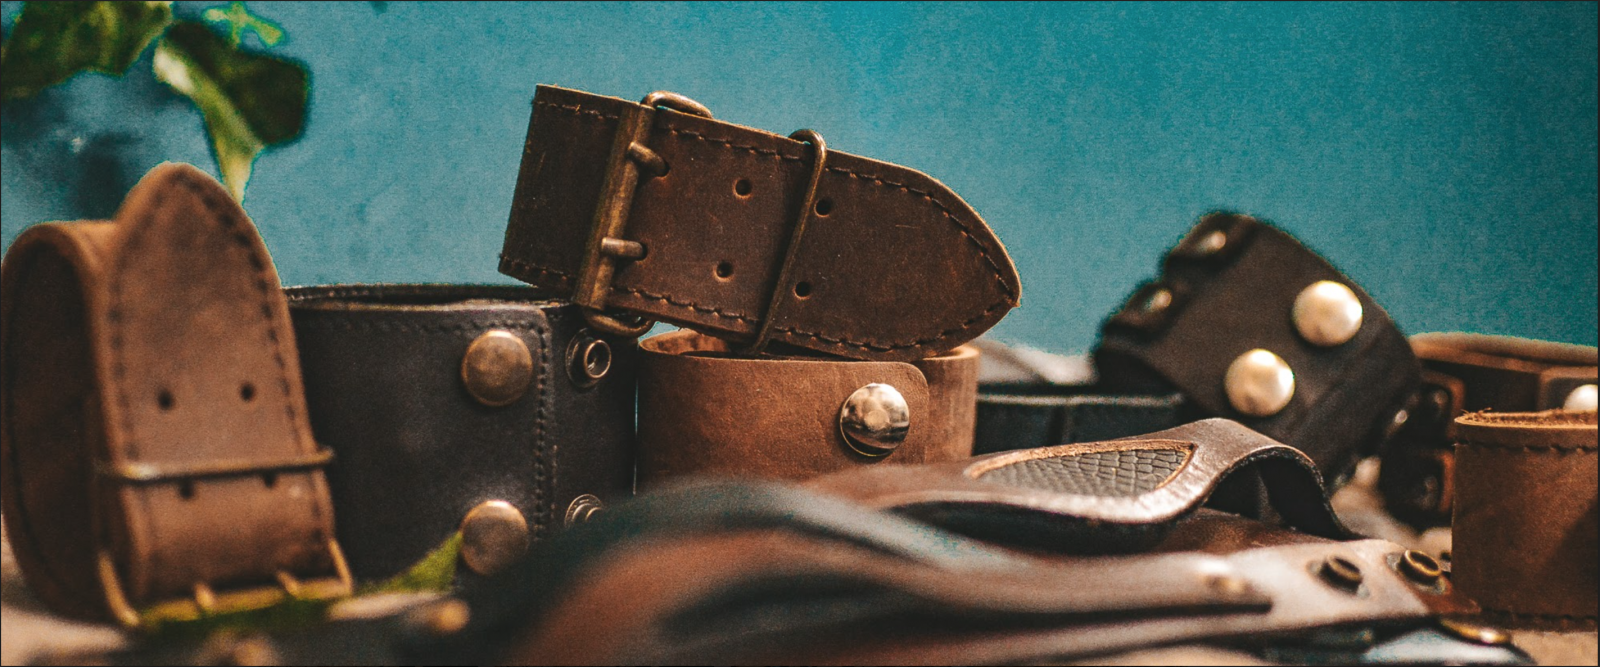 Leather Collection Banner